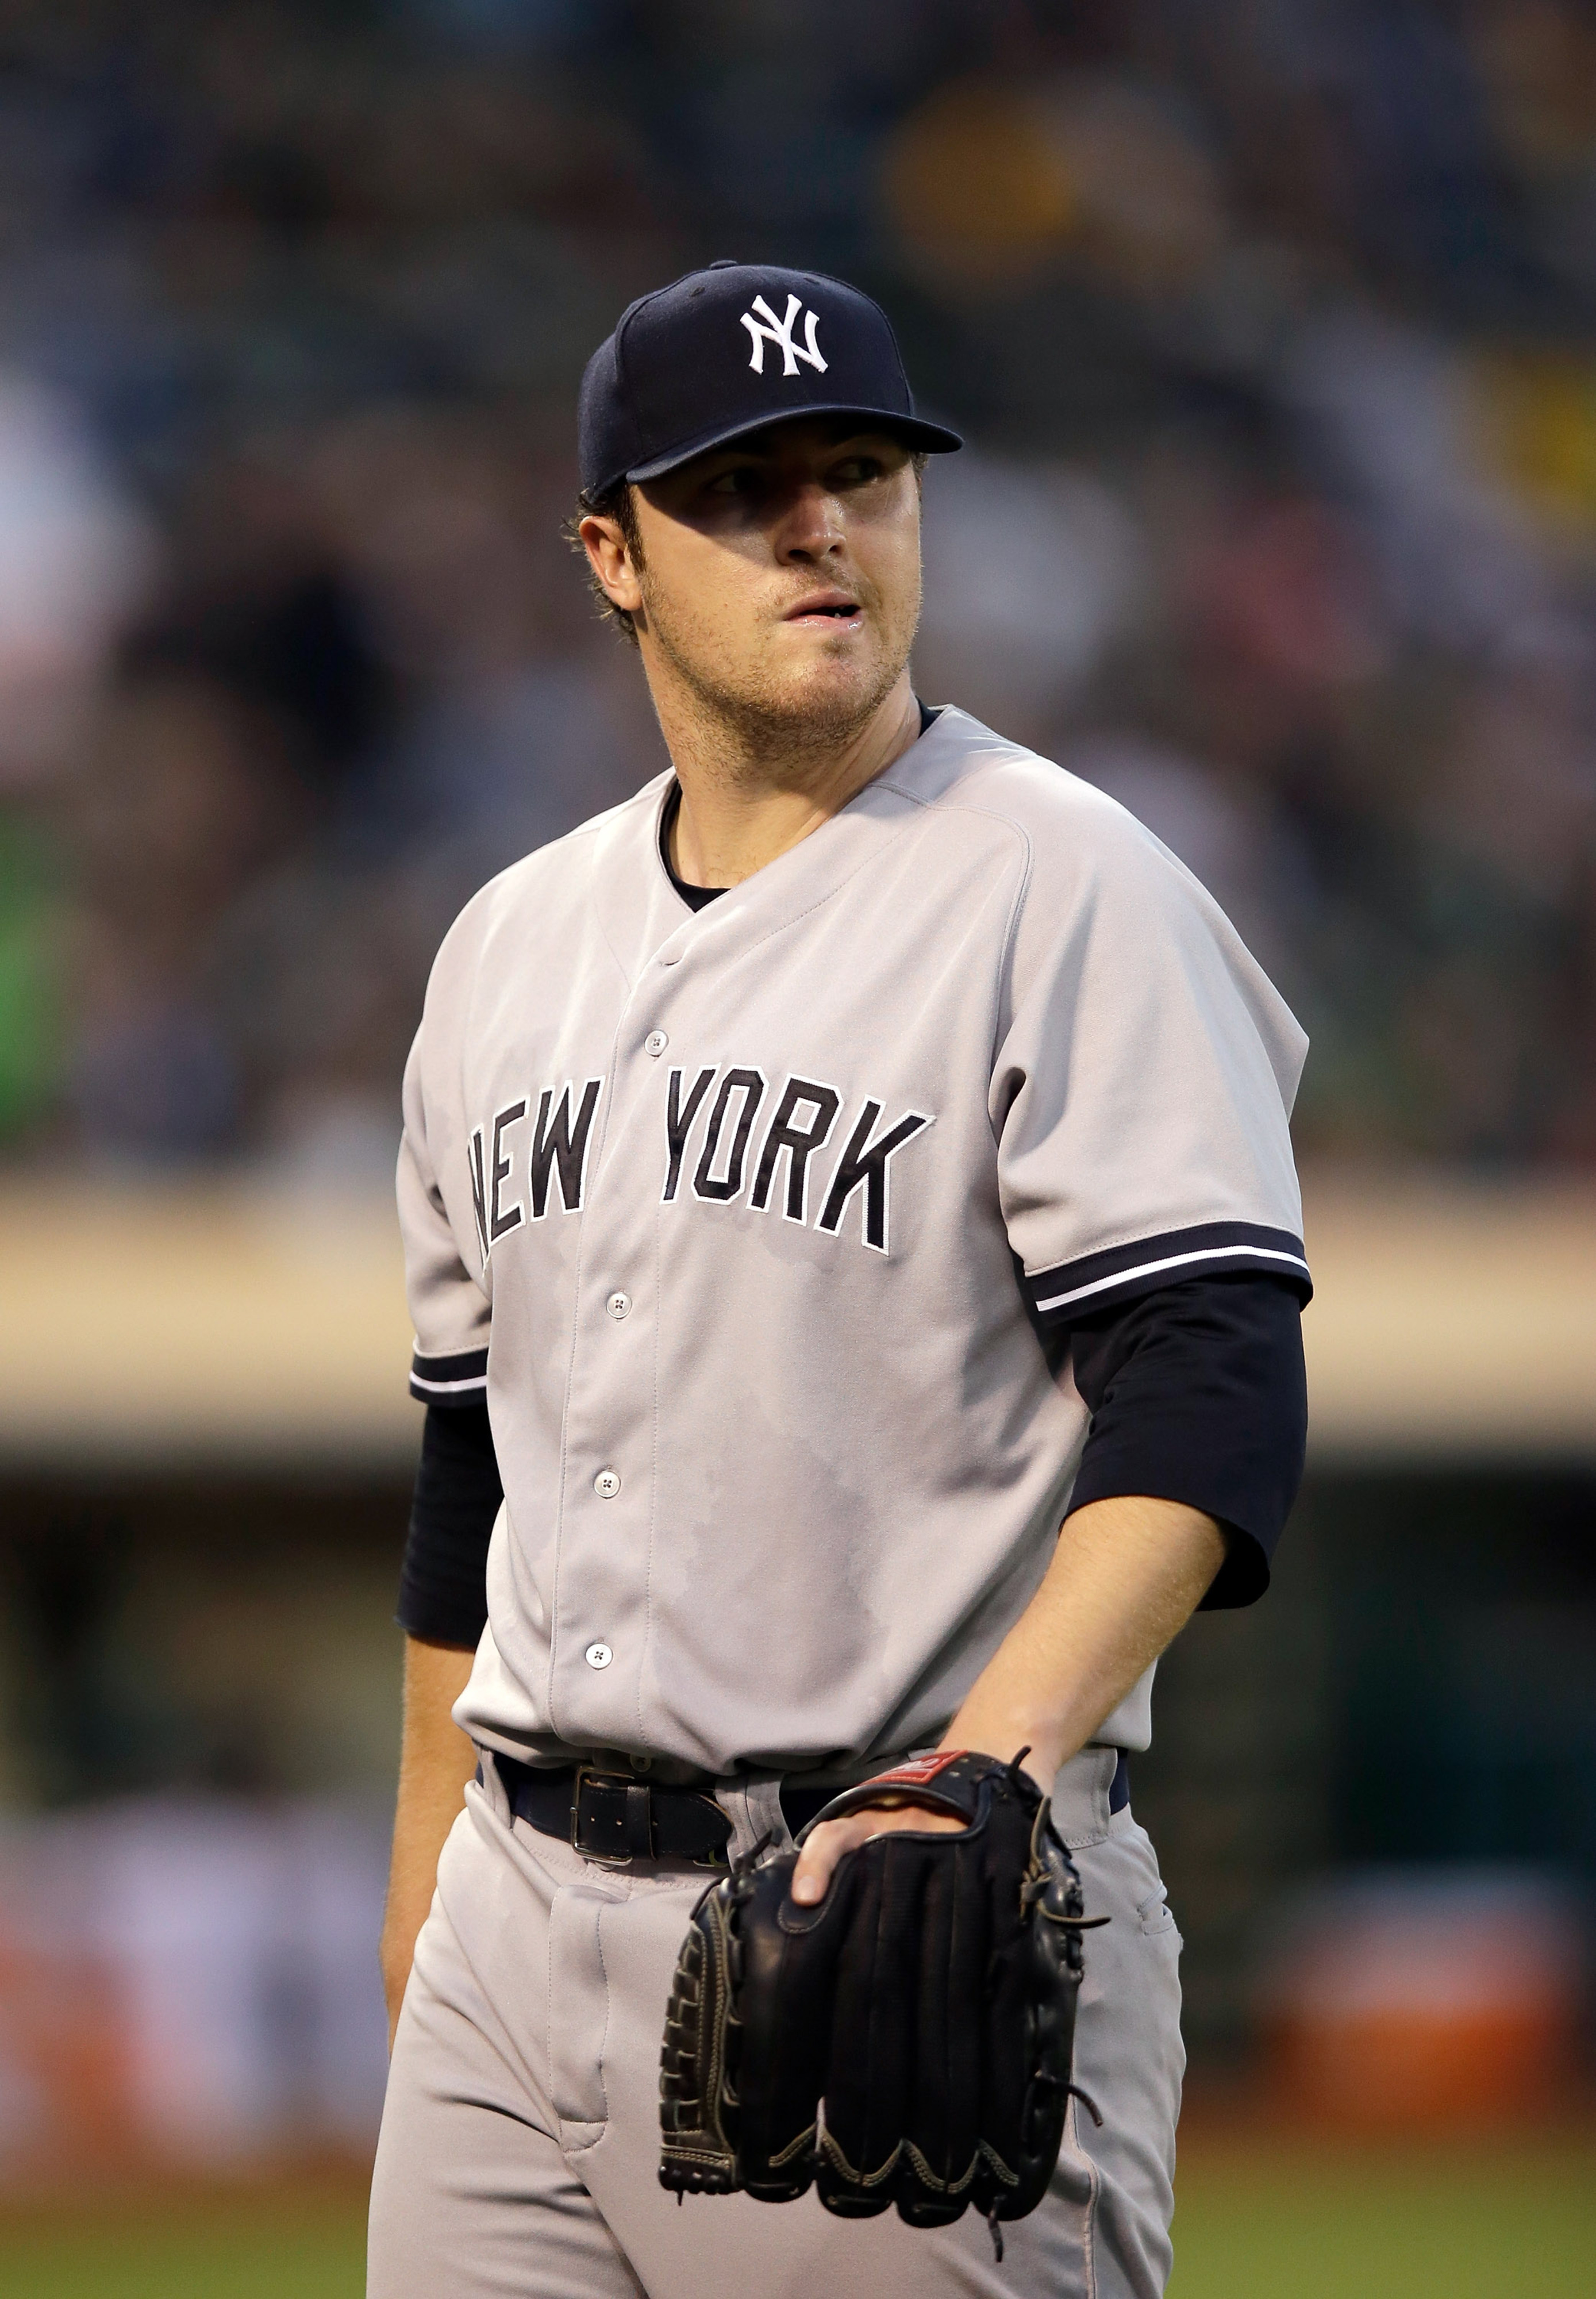 MLB trade rumor roundup: Yankees aggressively shopping Hughes and Joba, Red Sox looking for bullpen help, Phillies buying?